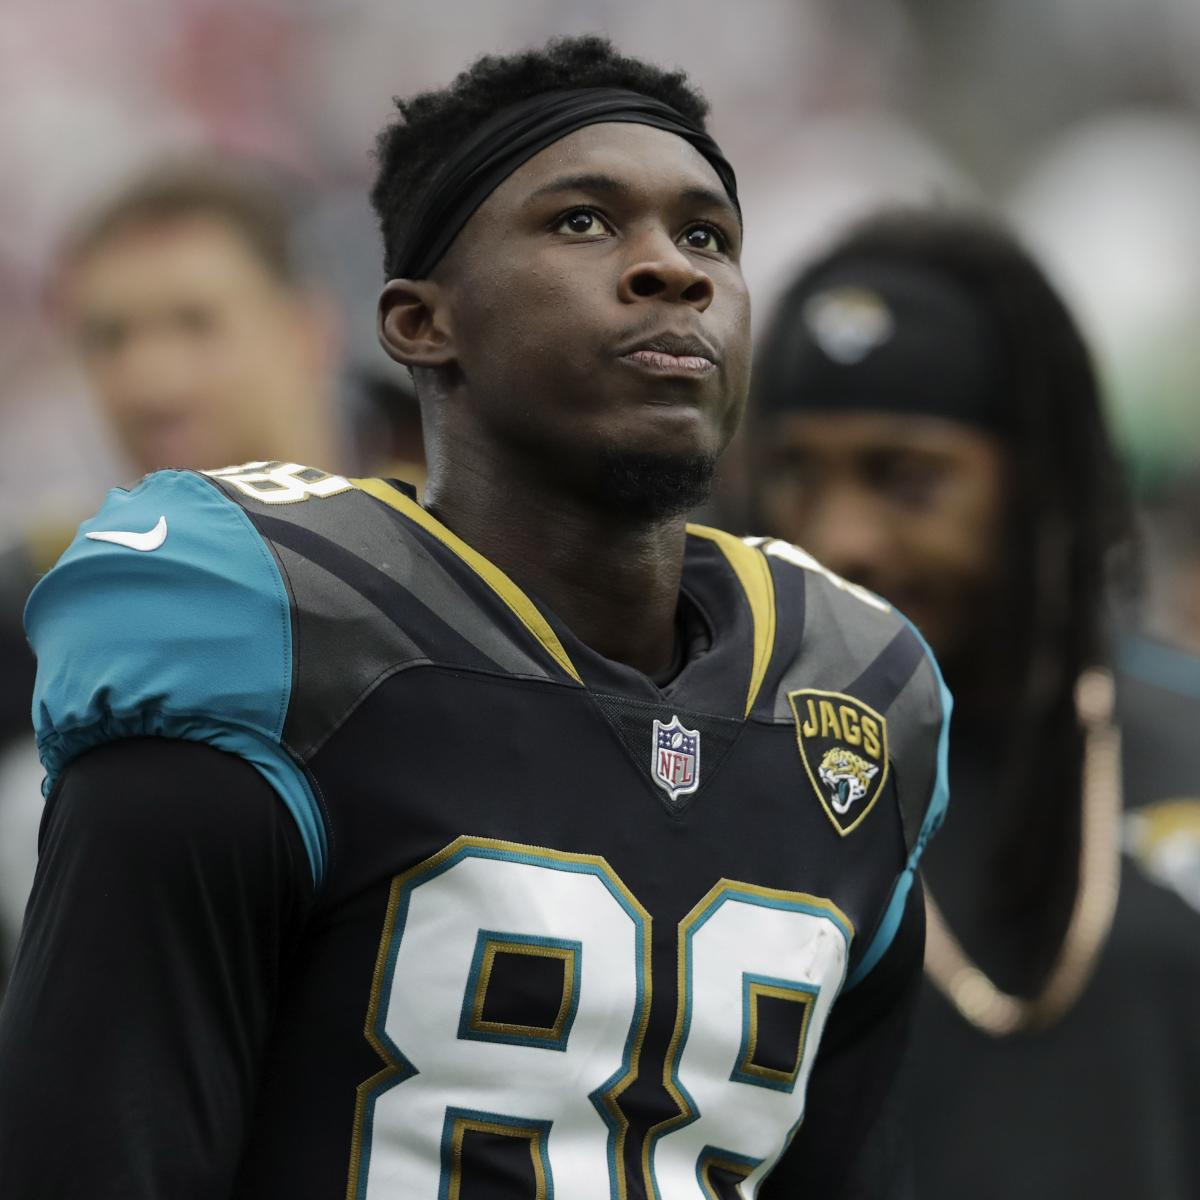 Colorado Shooting R H Youtube Com: Allen Hurns Switching To Jersey No. 17 To Honor Florida